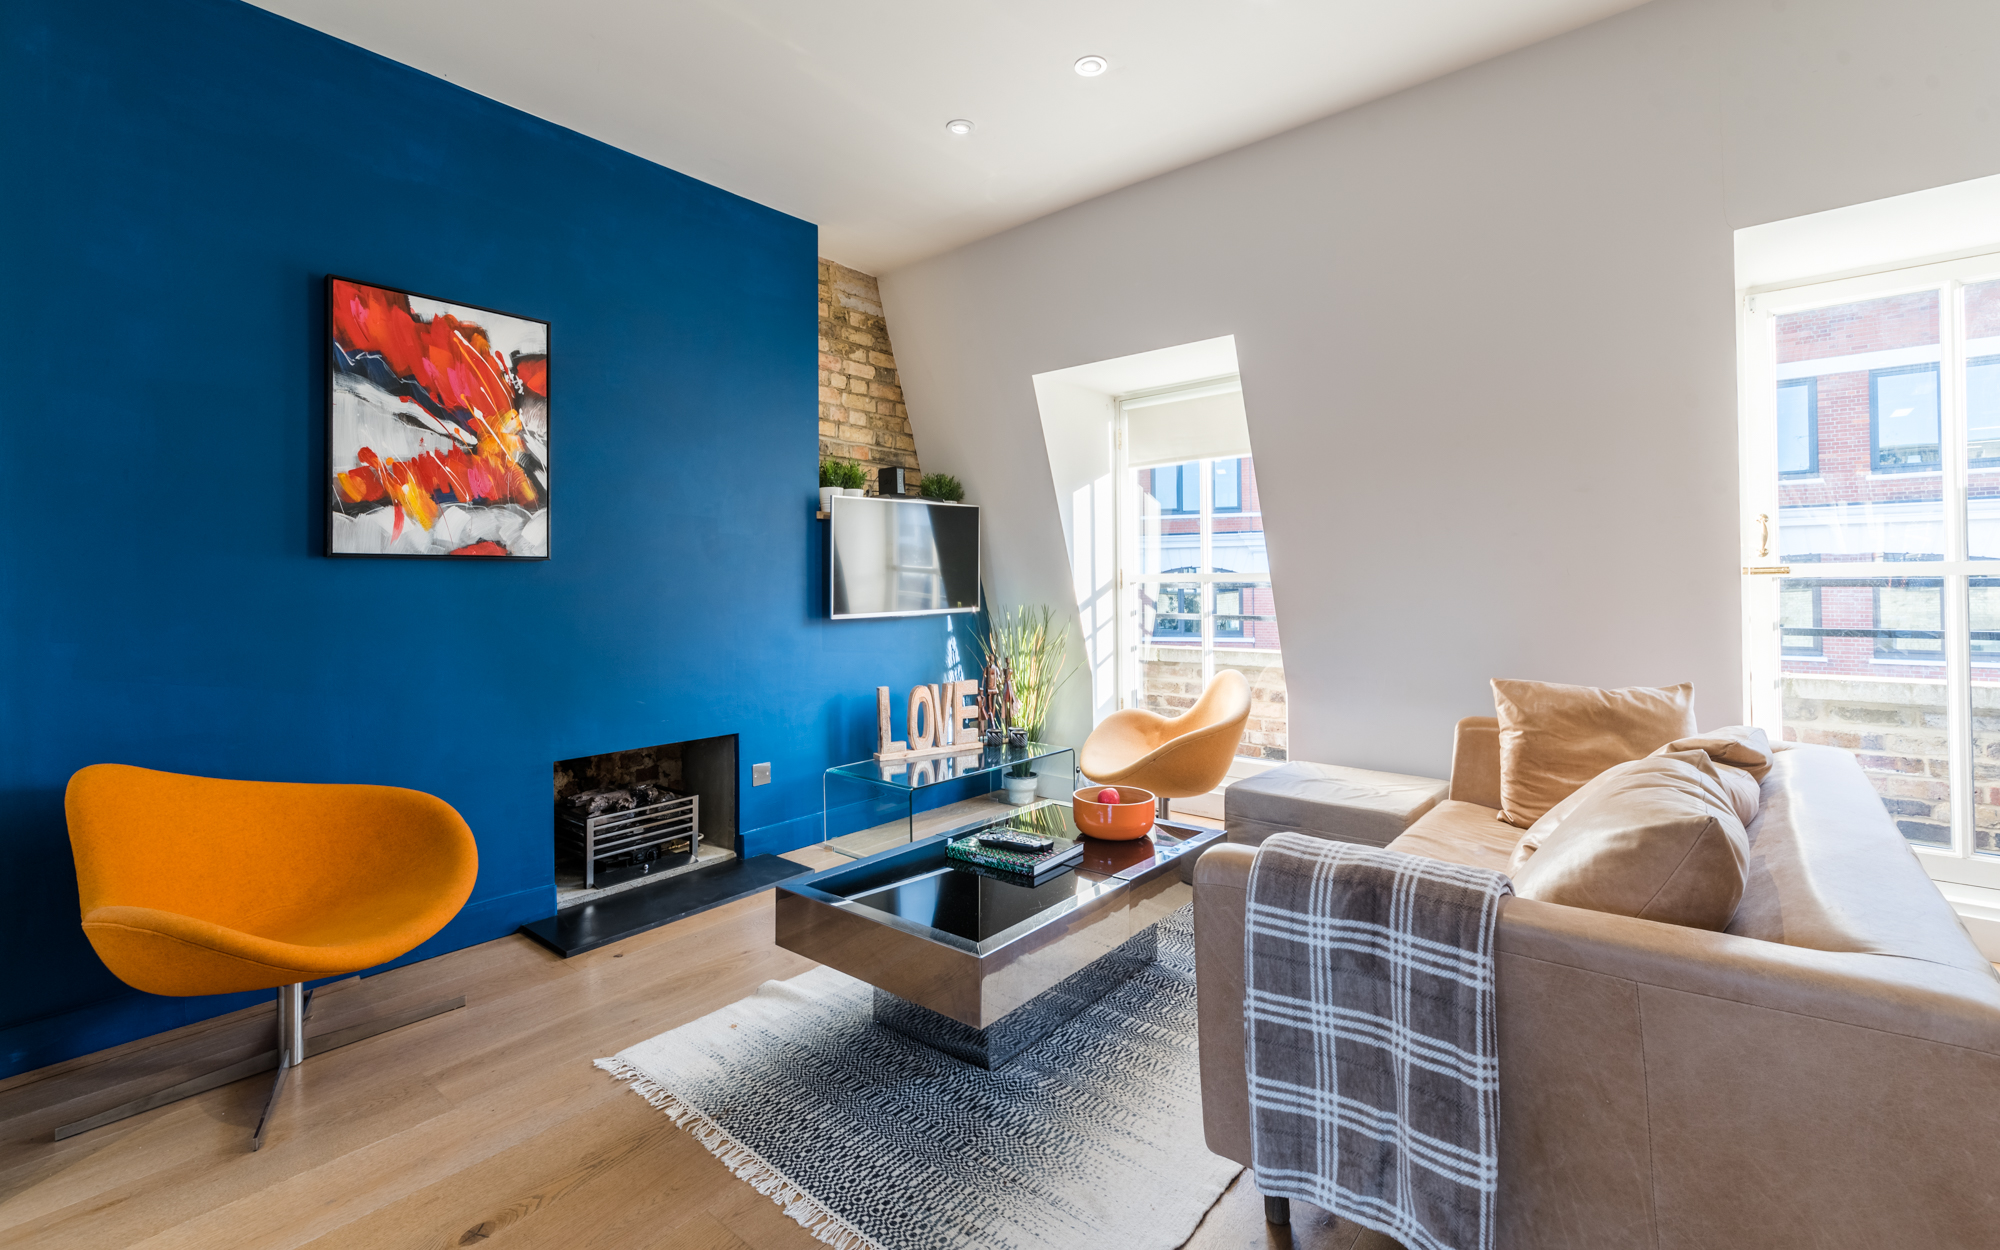 Lovelydays luxury service apartment rental - London - Fitzrovia - Foley Street II - Lovelysuite - 2 bedrooms - 2 bathrooms - Luxury living room - 3b5d5d7234b9 - Lovelydays